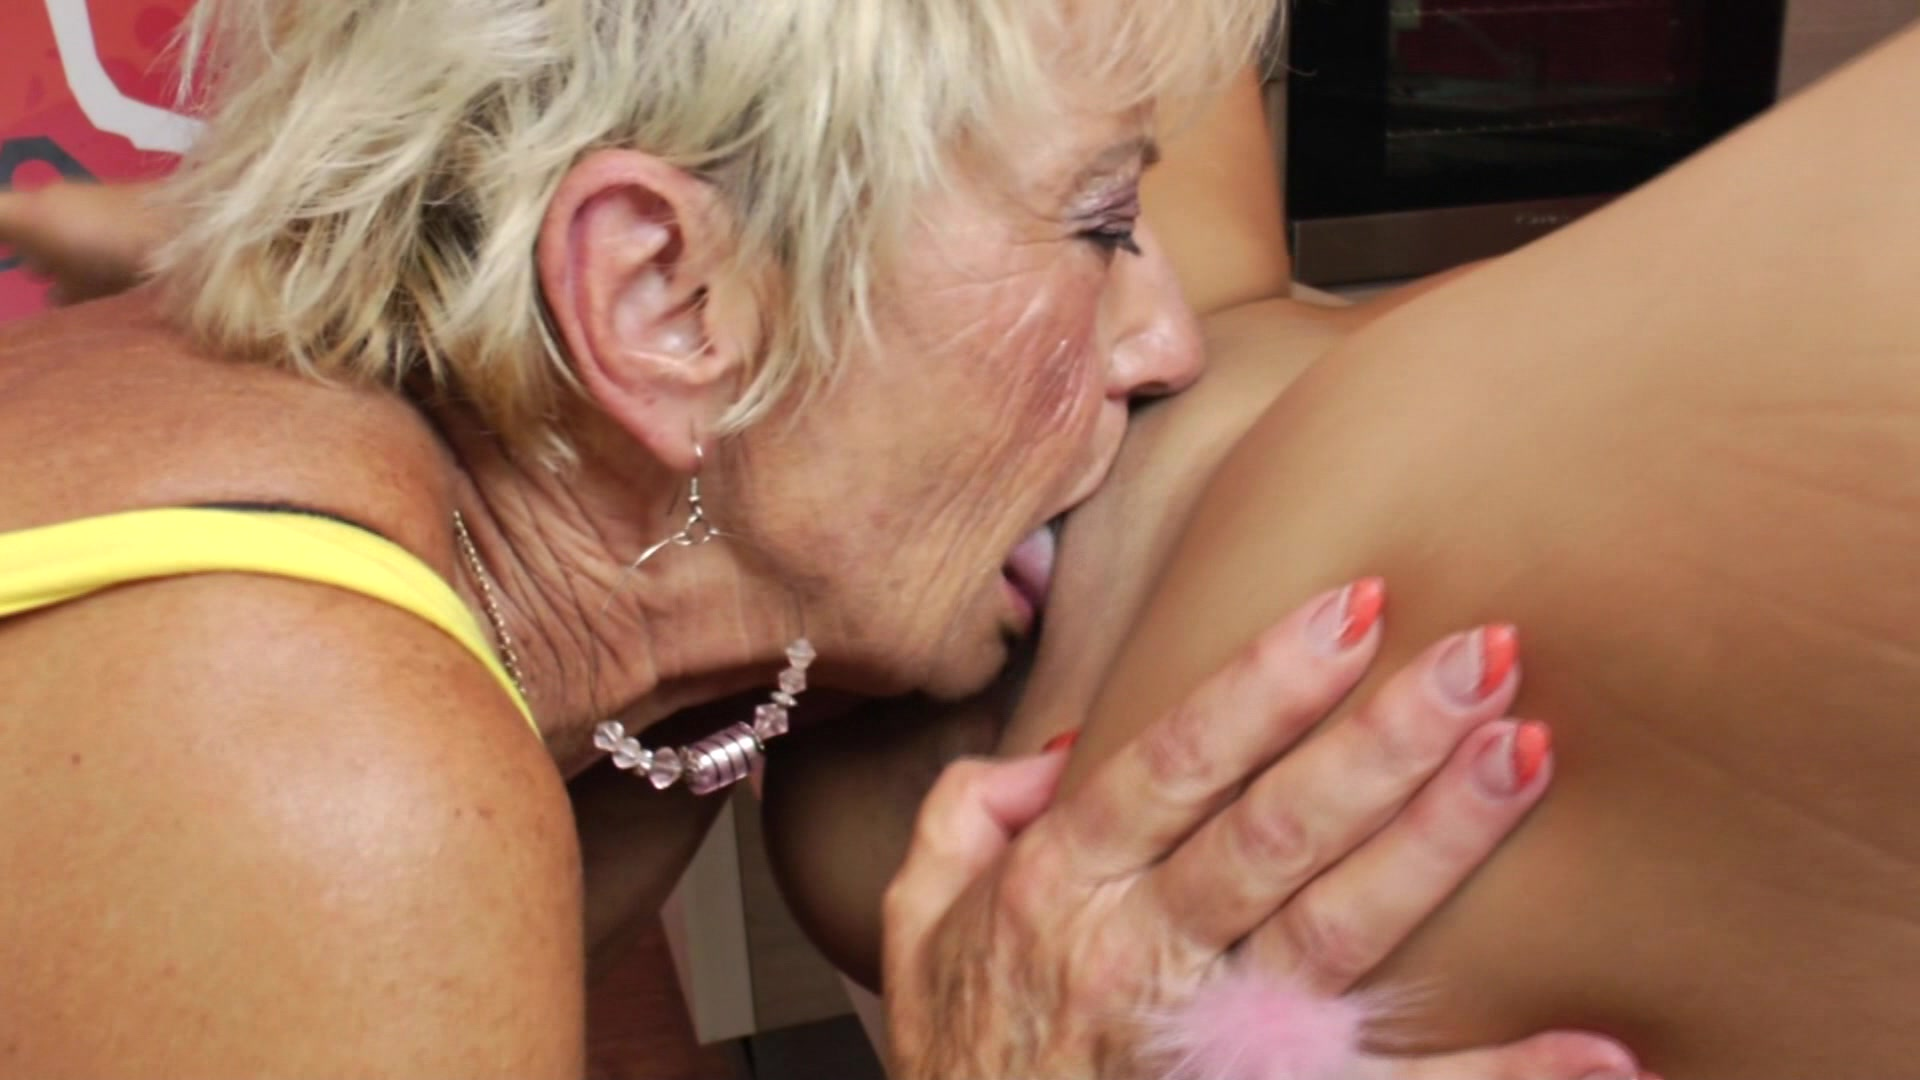 Amature housewives lick each other — 3